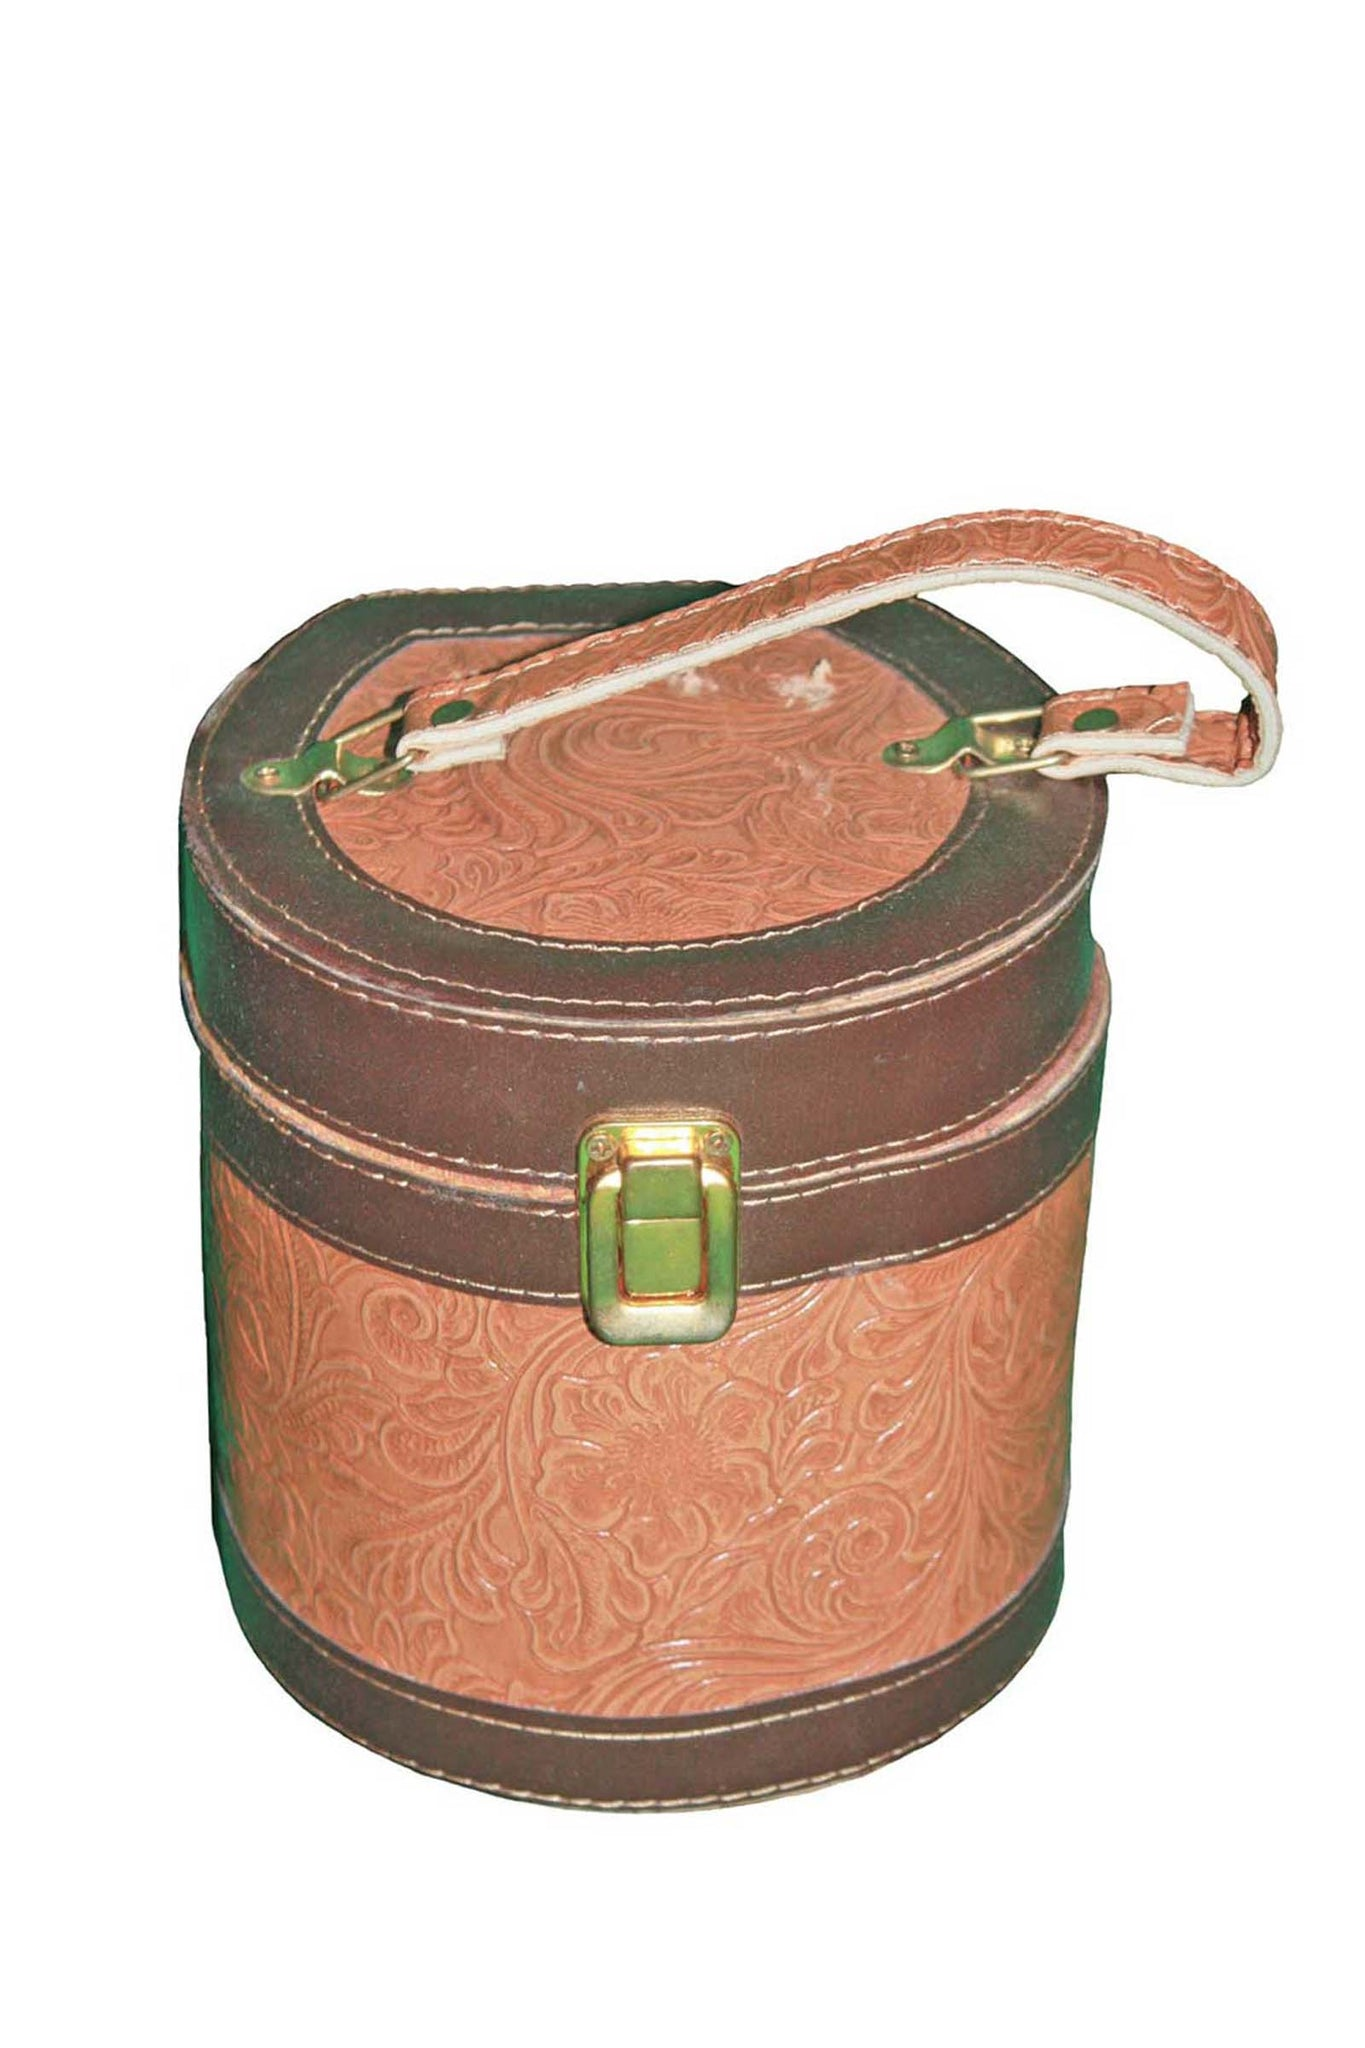 Vintage Hatty box bag